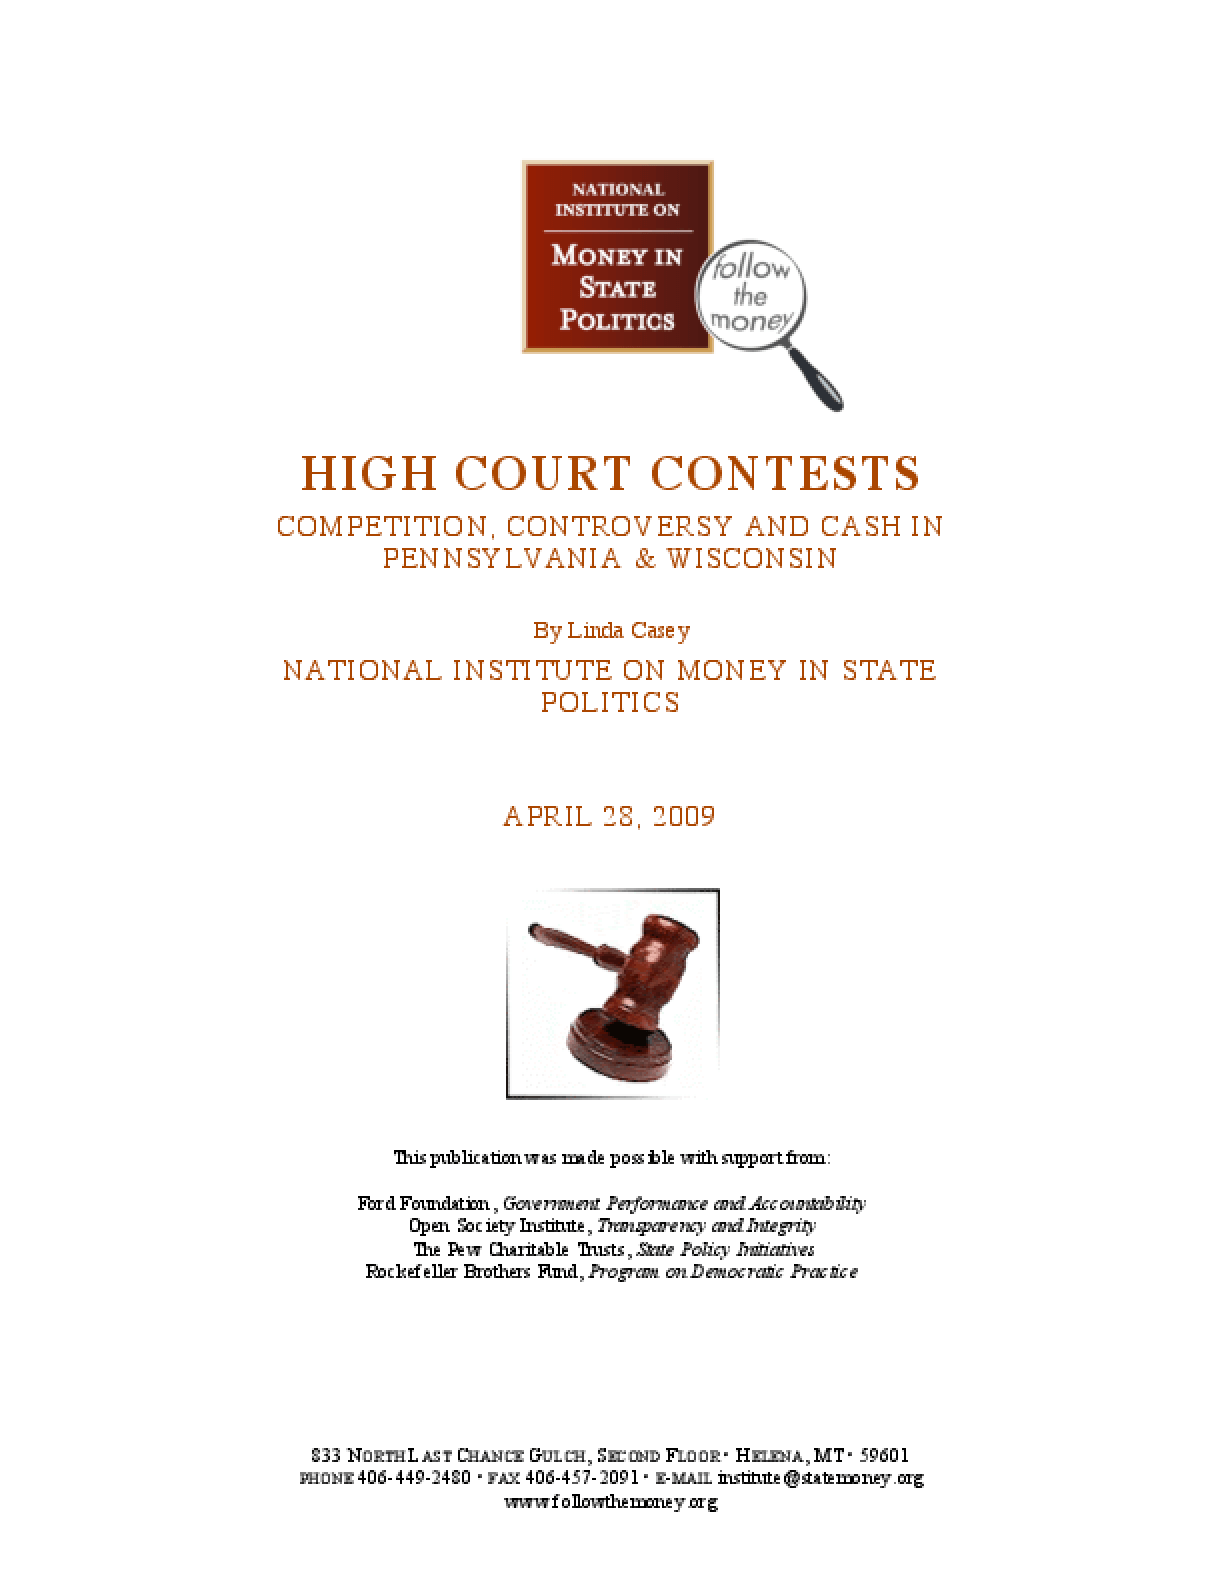 High Court Contests: Competition, Controversy and Cash in Pennsylvania & Wisconsin